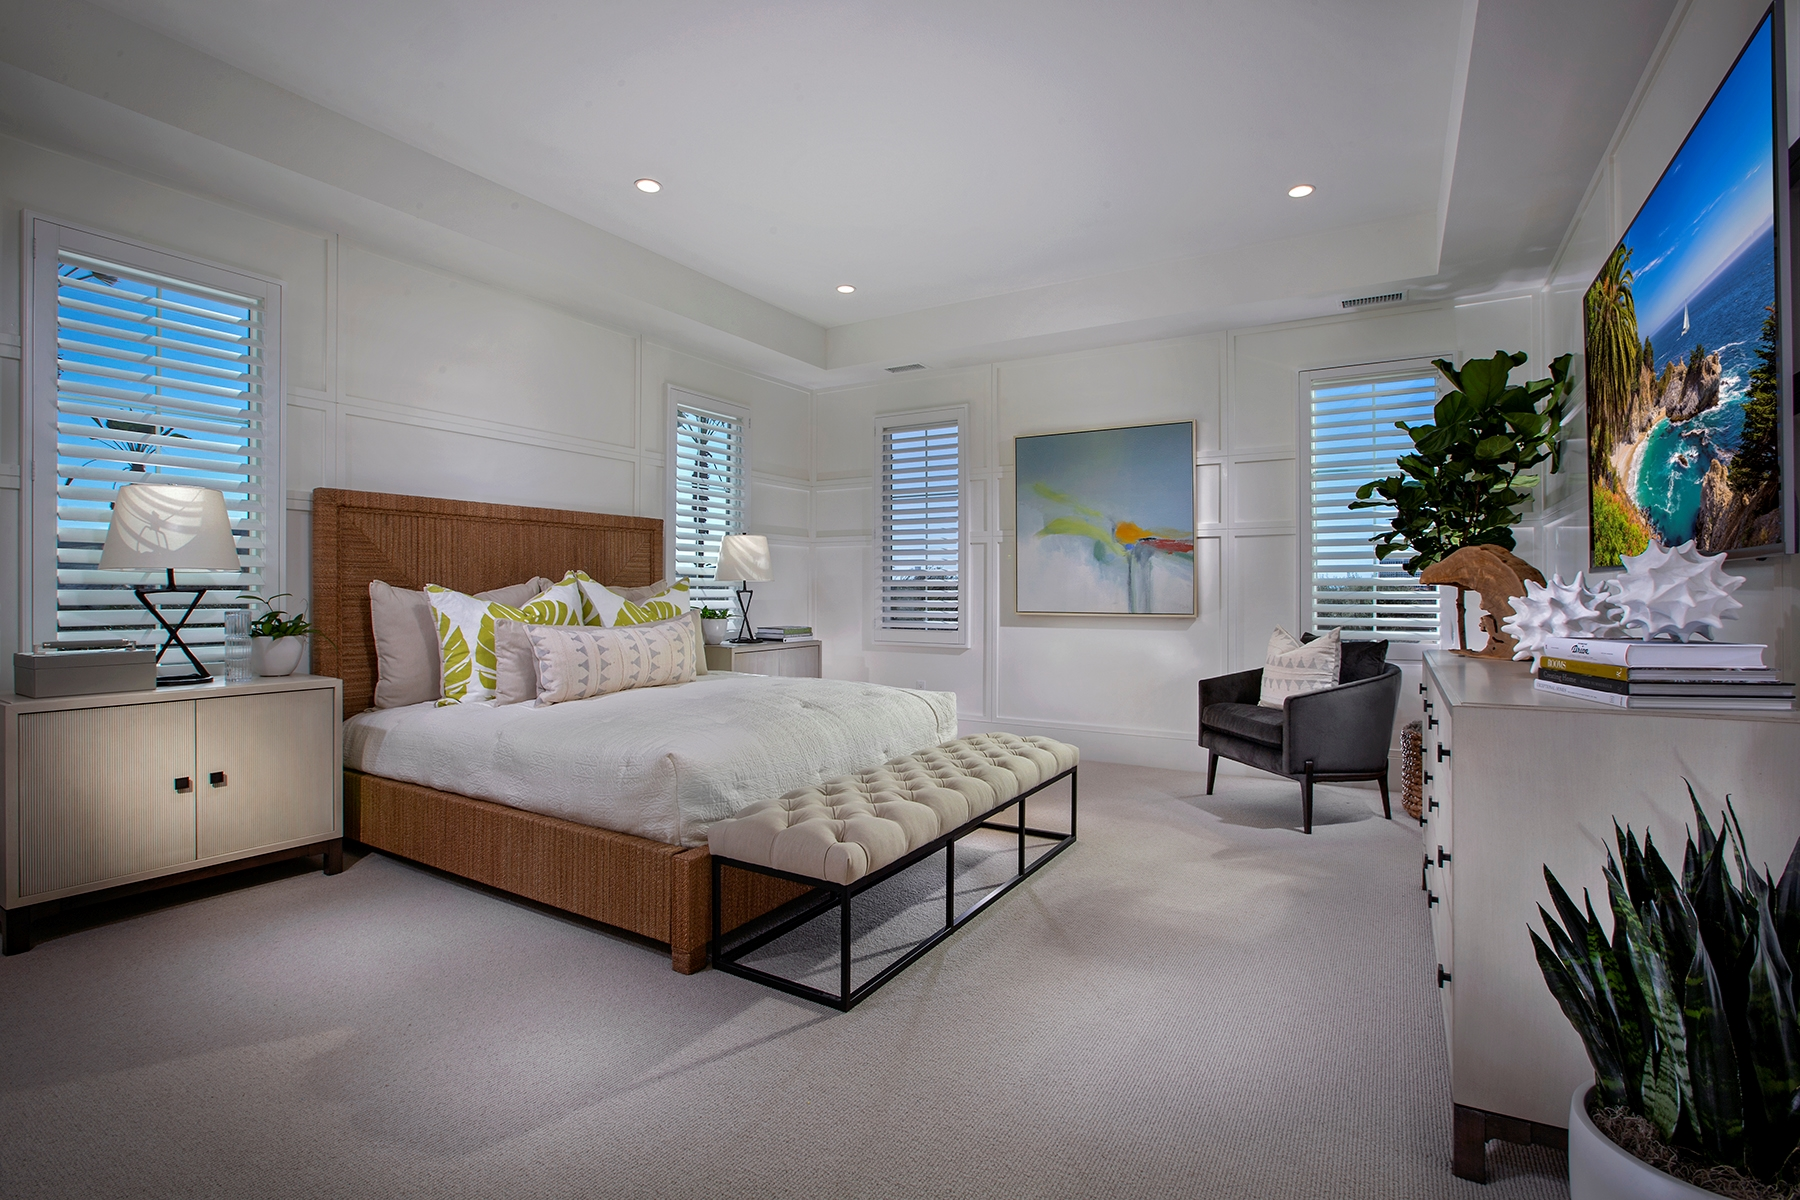 Master Bedroom at Barcelona Residence 3 in Irvine